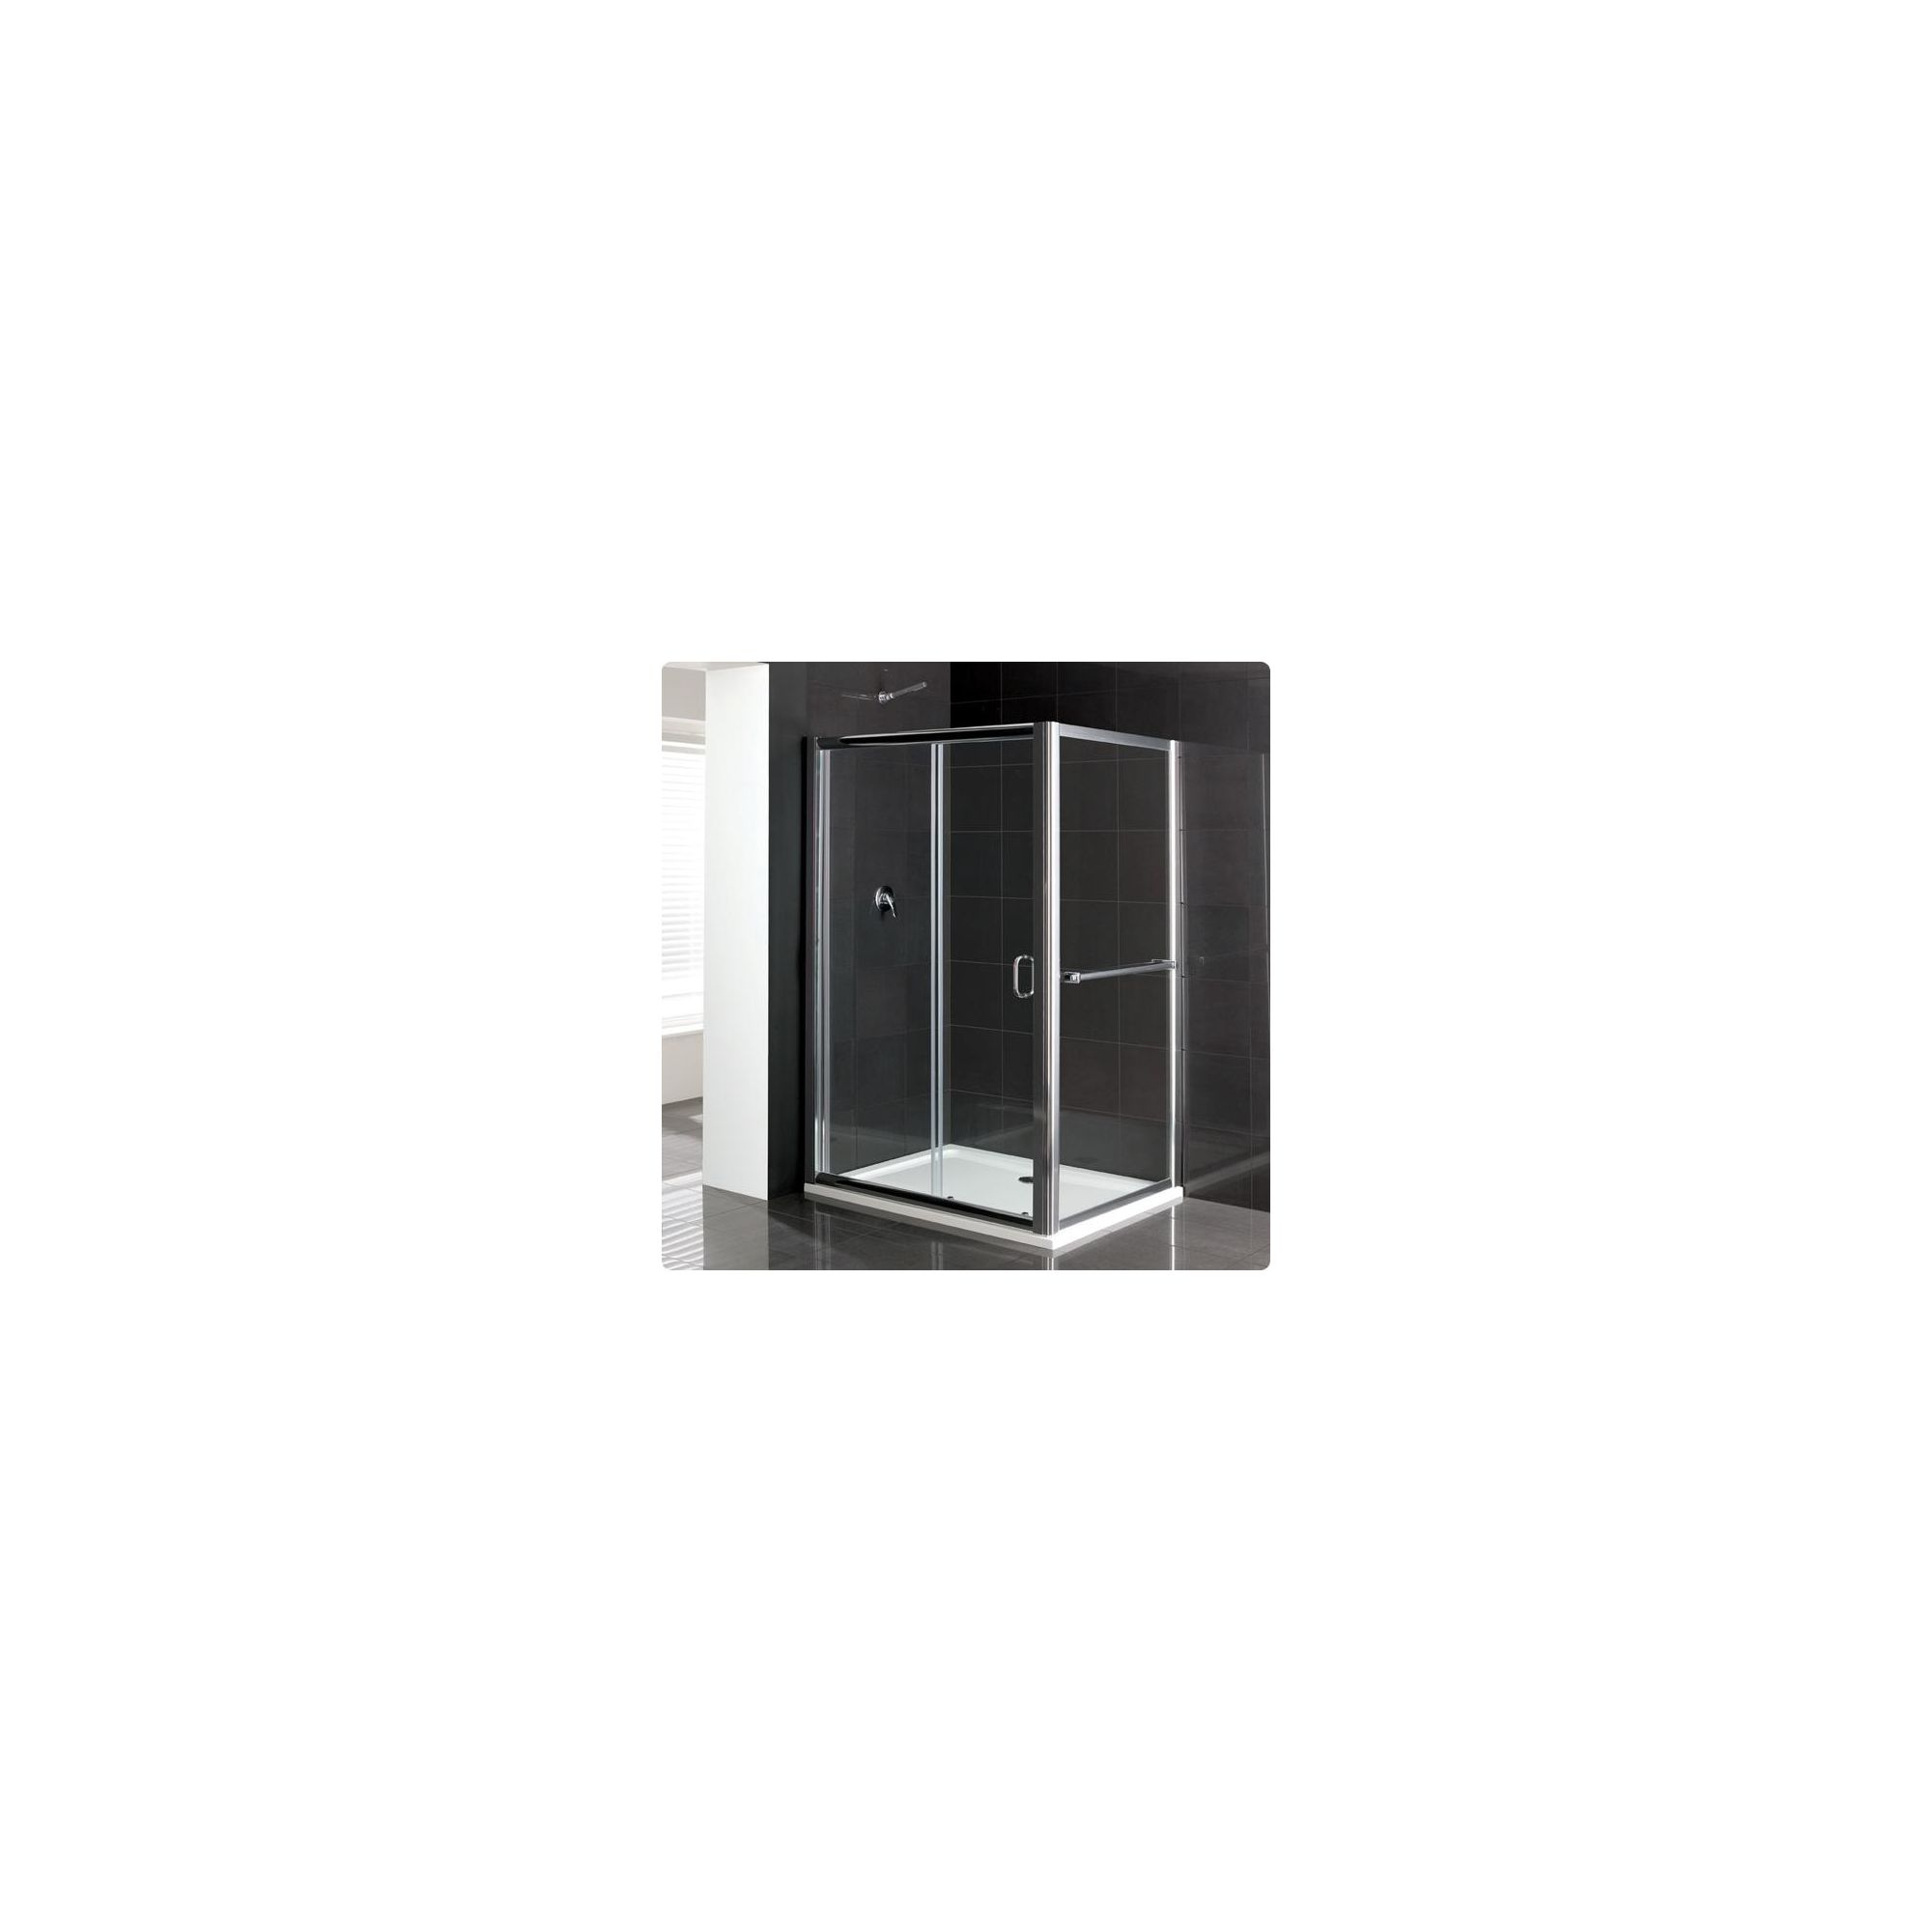 Duchy Elite Silver Sliding Door Shower Enclosure, 1700mm x 800mm, Standard Tray, 6mm Glass at Tesco Direct